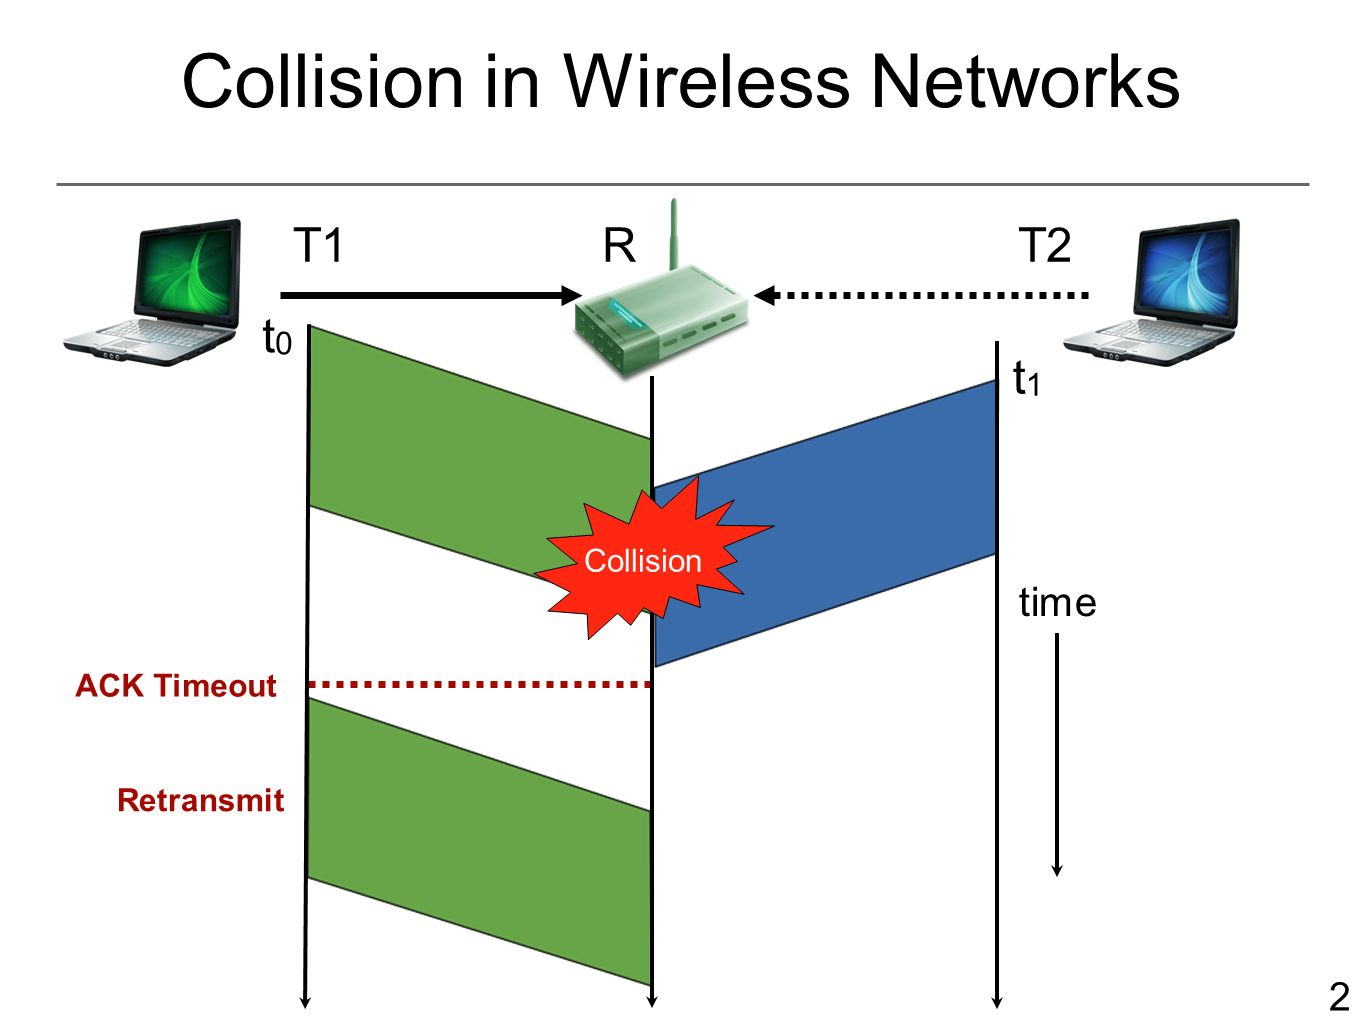 hight resolution of 2 2 collision in wireless networks t1rt2 t0t0 t1t1 ack timeout retransmit time collision